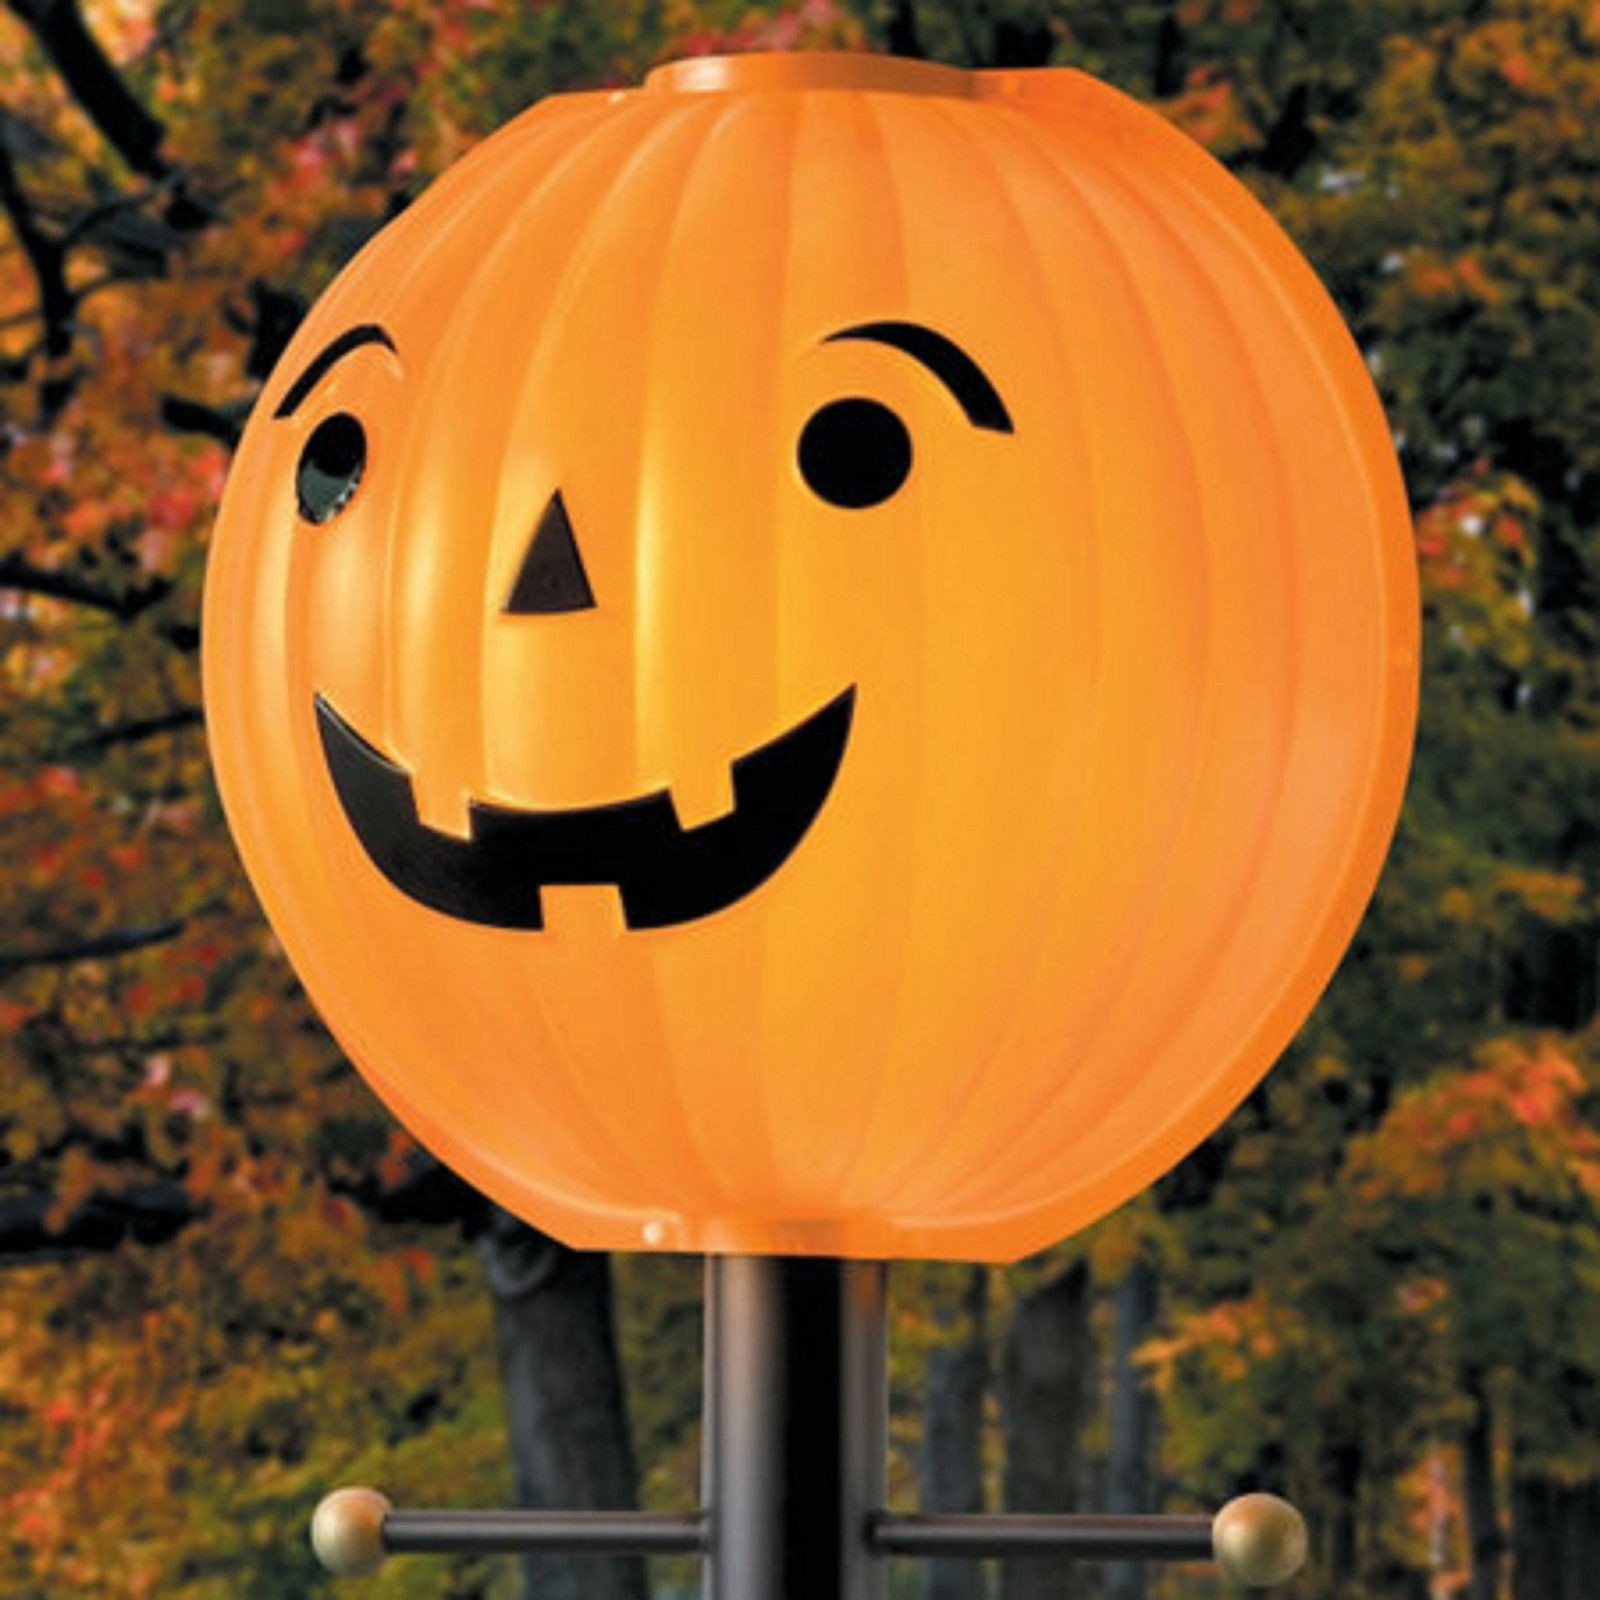 Pumpkin LampLighter Lamp Post Light Cover Outdoor Halloween Decoration